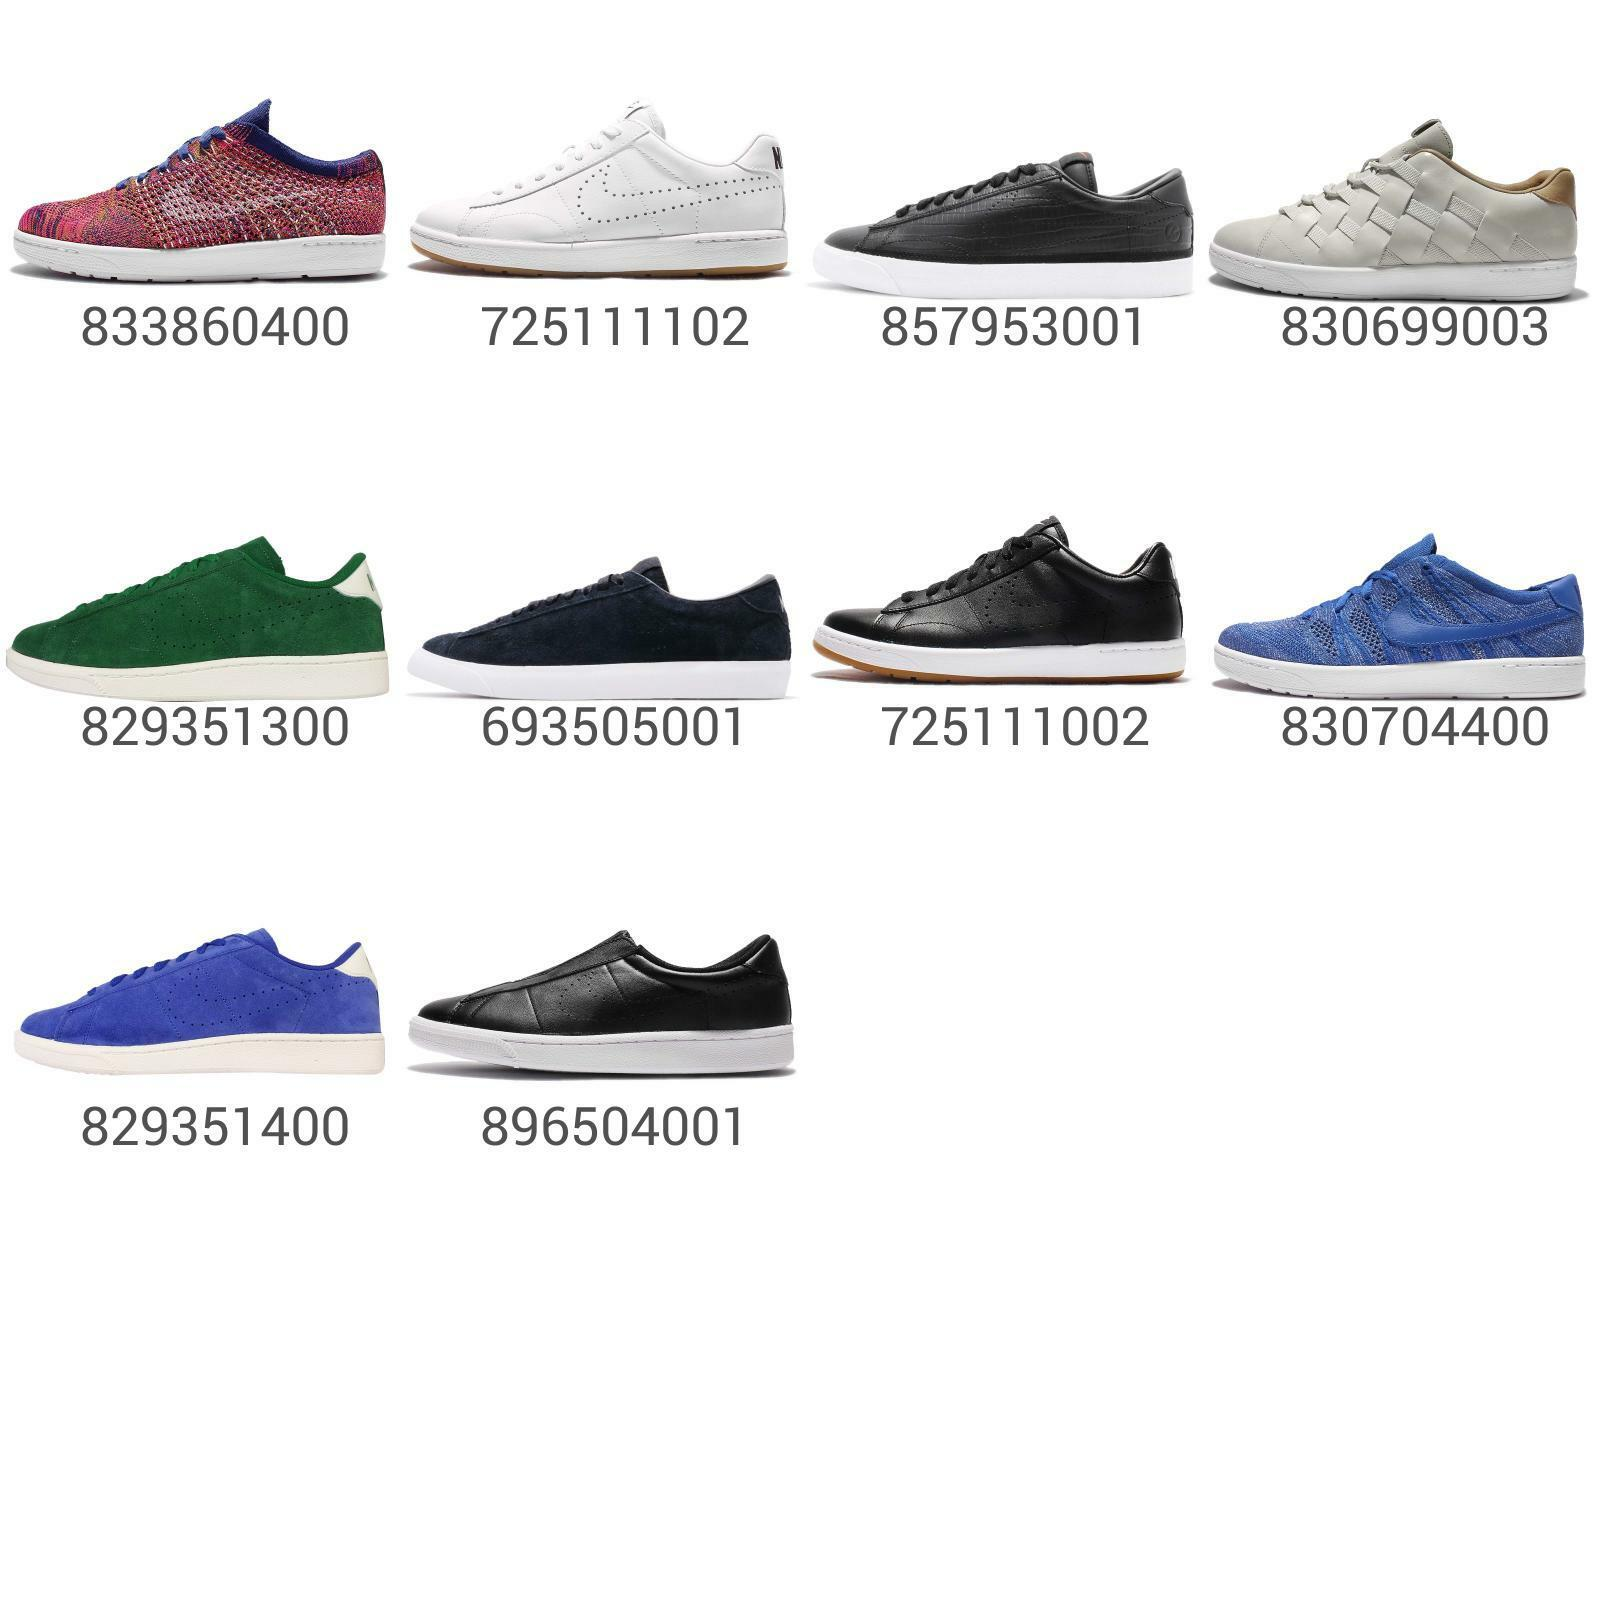 best sneakers e3577 e673f WMNS Nike Tennis Classic Ultra LTHR Leather White Gum Womens Shoes 725111- 102 12 for sale online   eBay